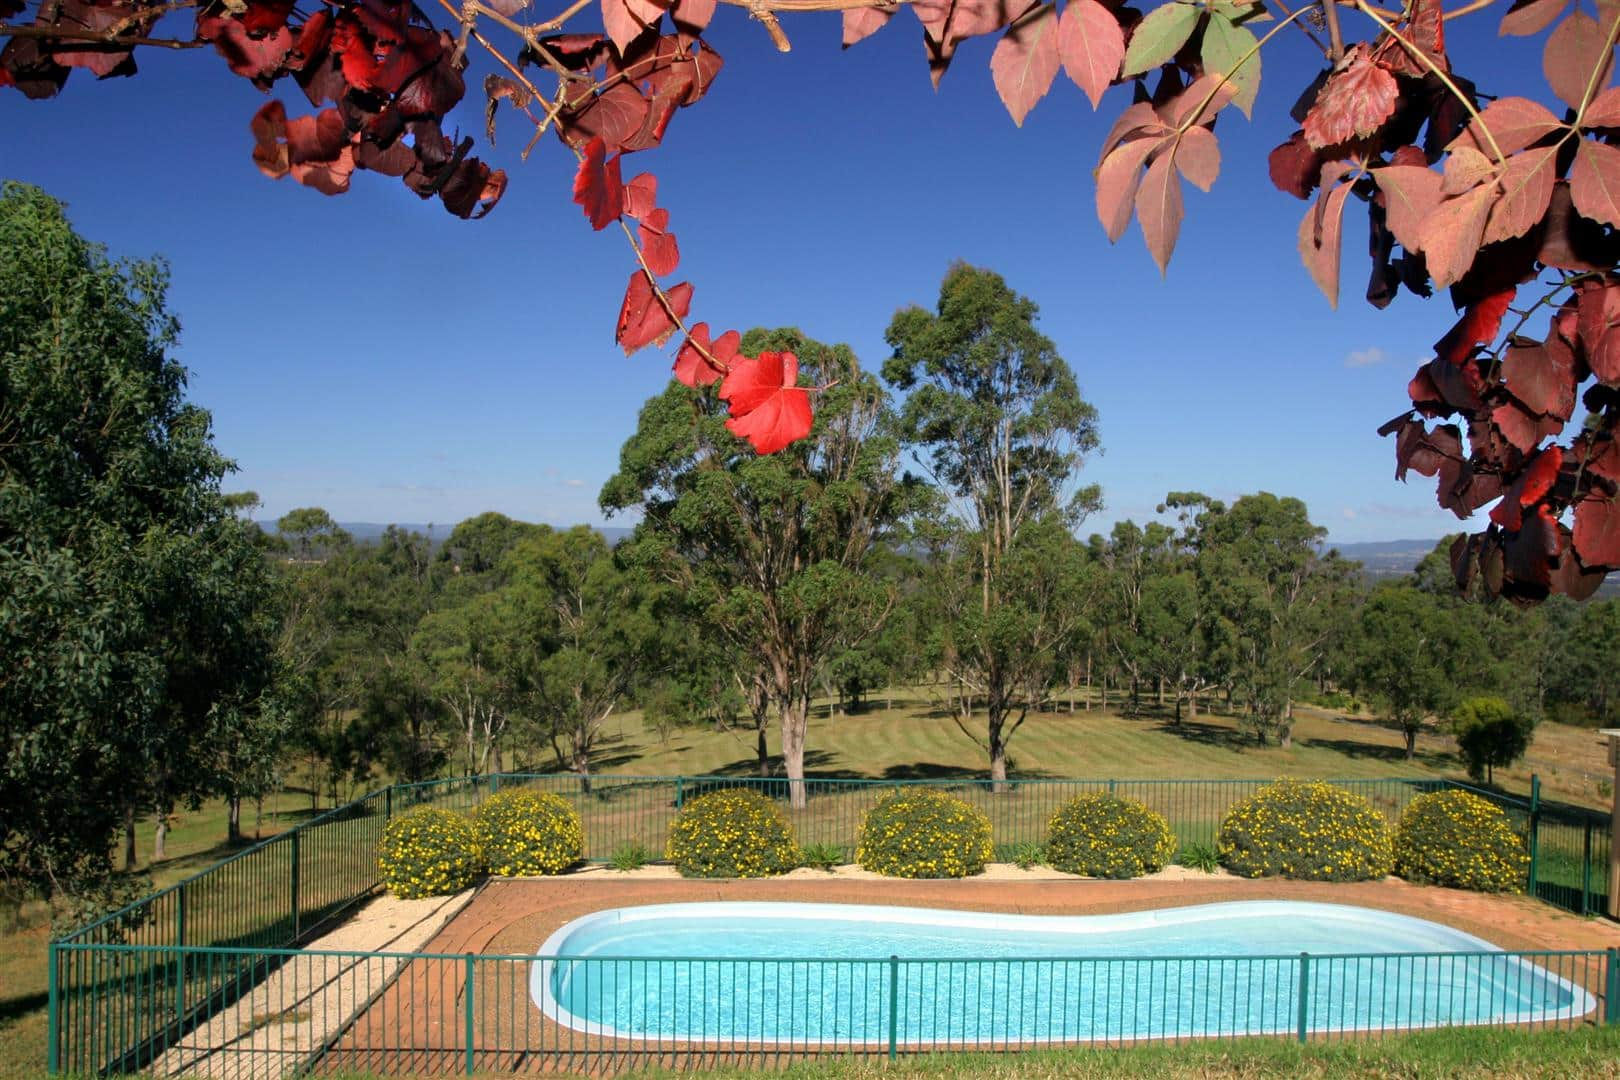 pool with countryside in the background